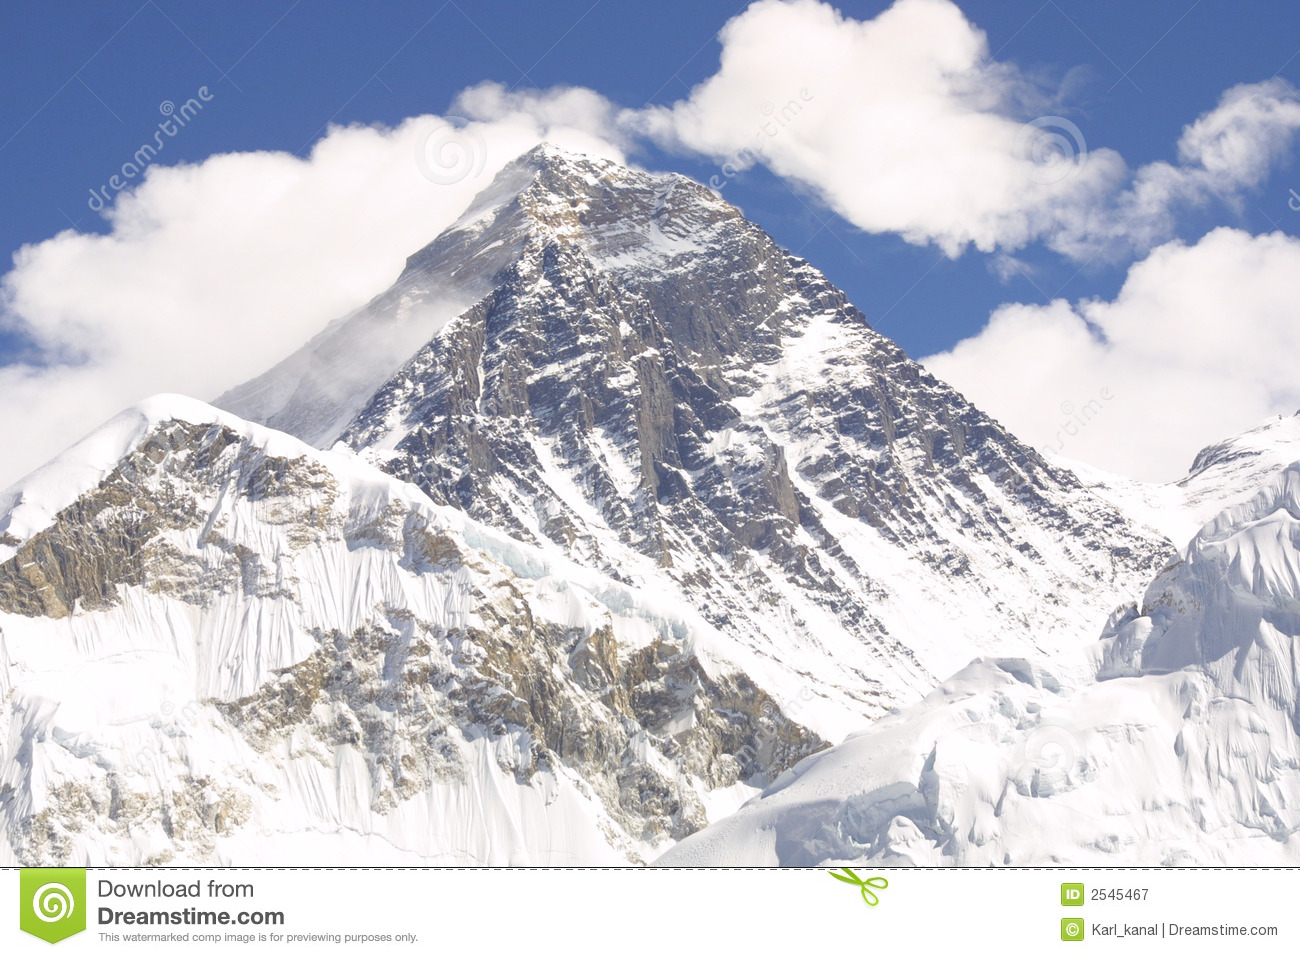 Mount Everest 8848 M Royalty Free Stock Photography.